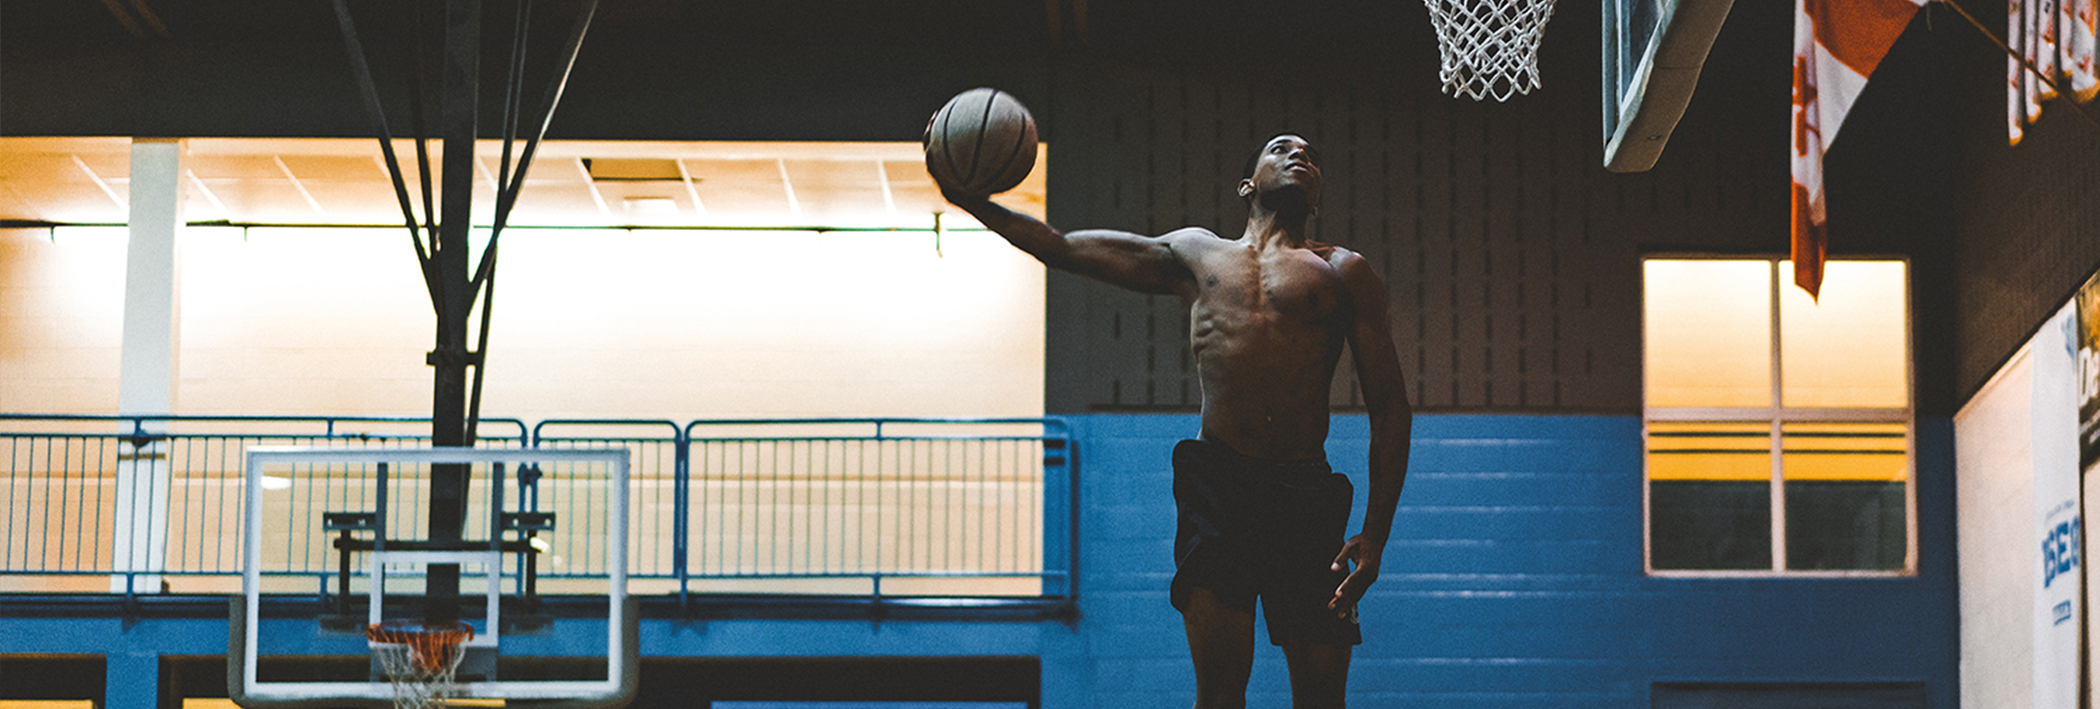 Man in the air about to slam dunk - ithriveX all-natural pain relief cream can soothe sore muscles and joints.